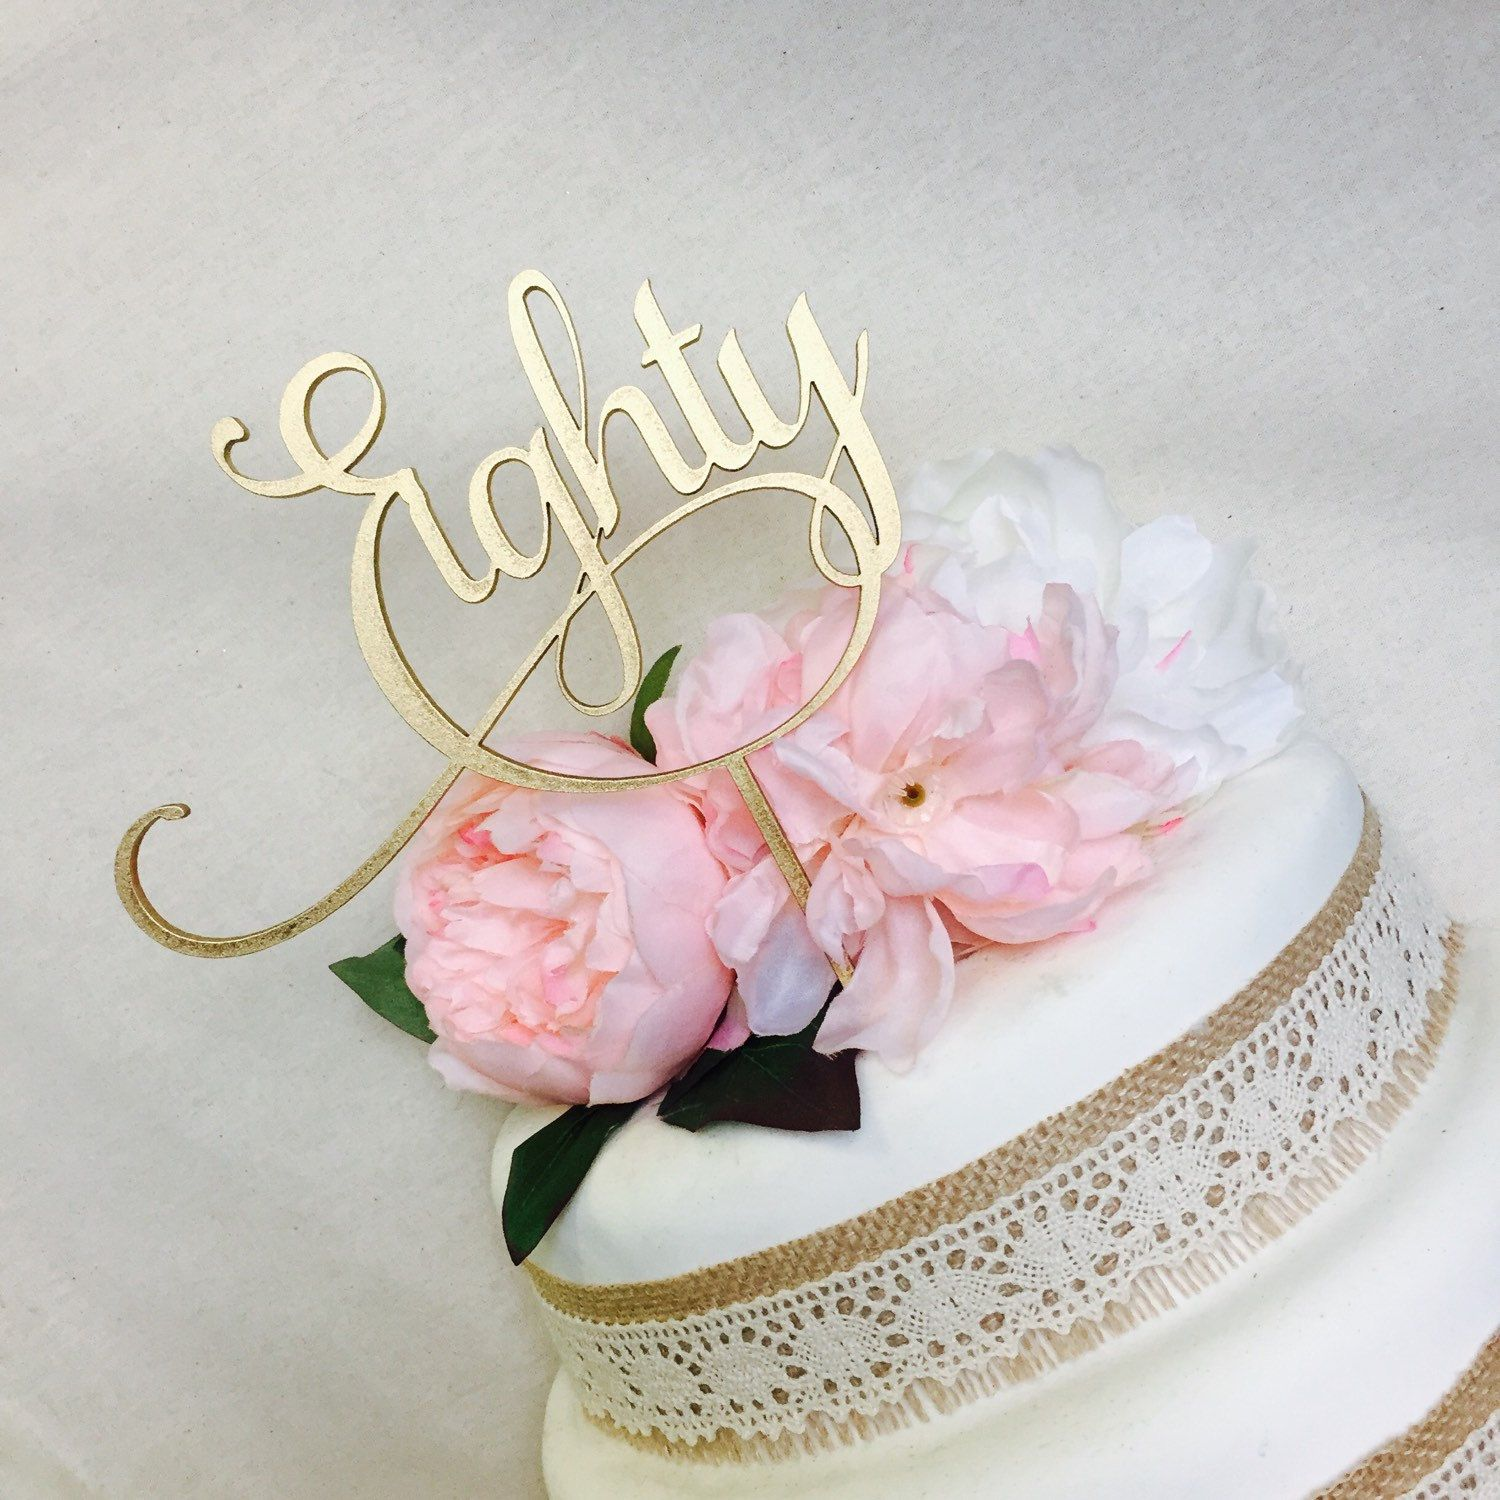 Eighty Cake Topper 80th Birthday Cake Topper Cake Decoration Cake